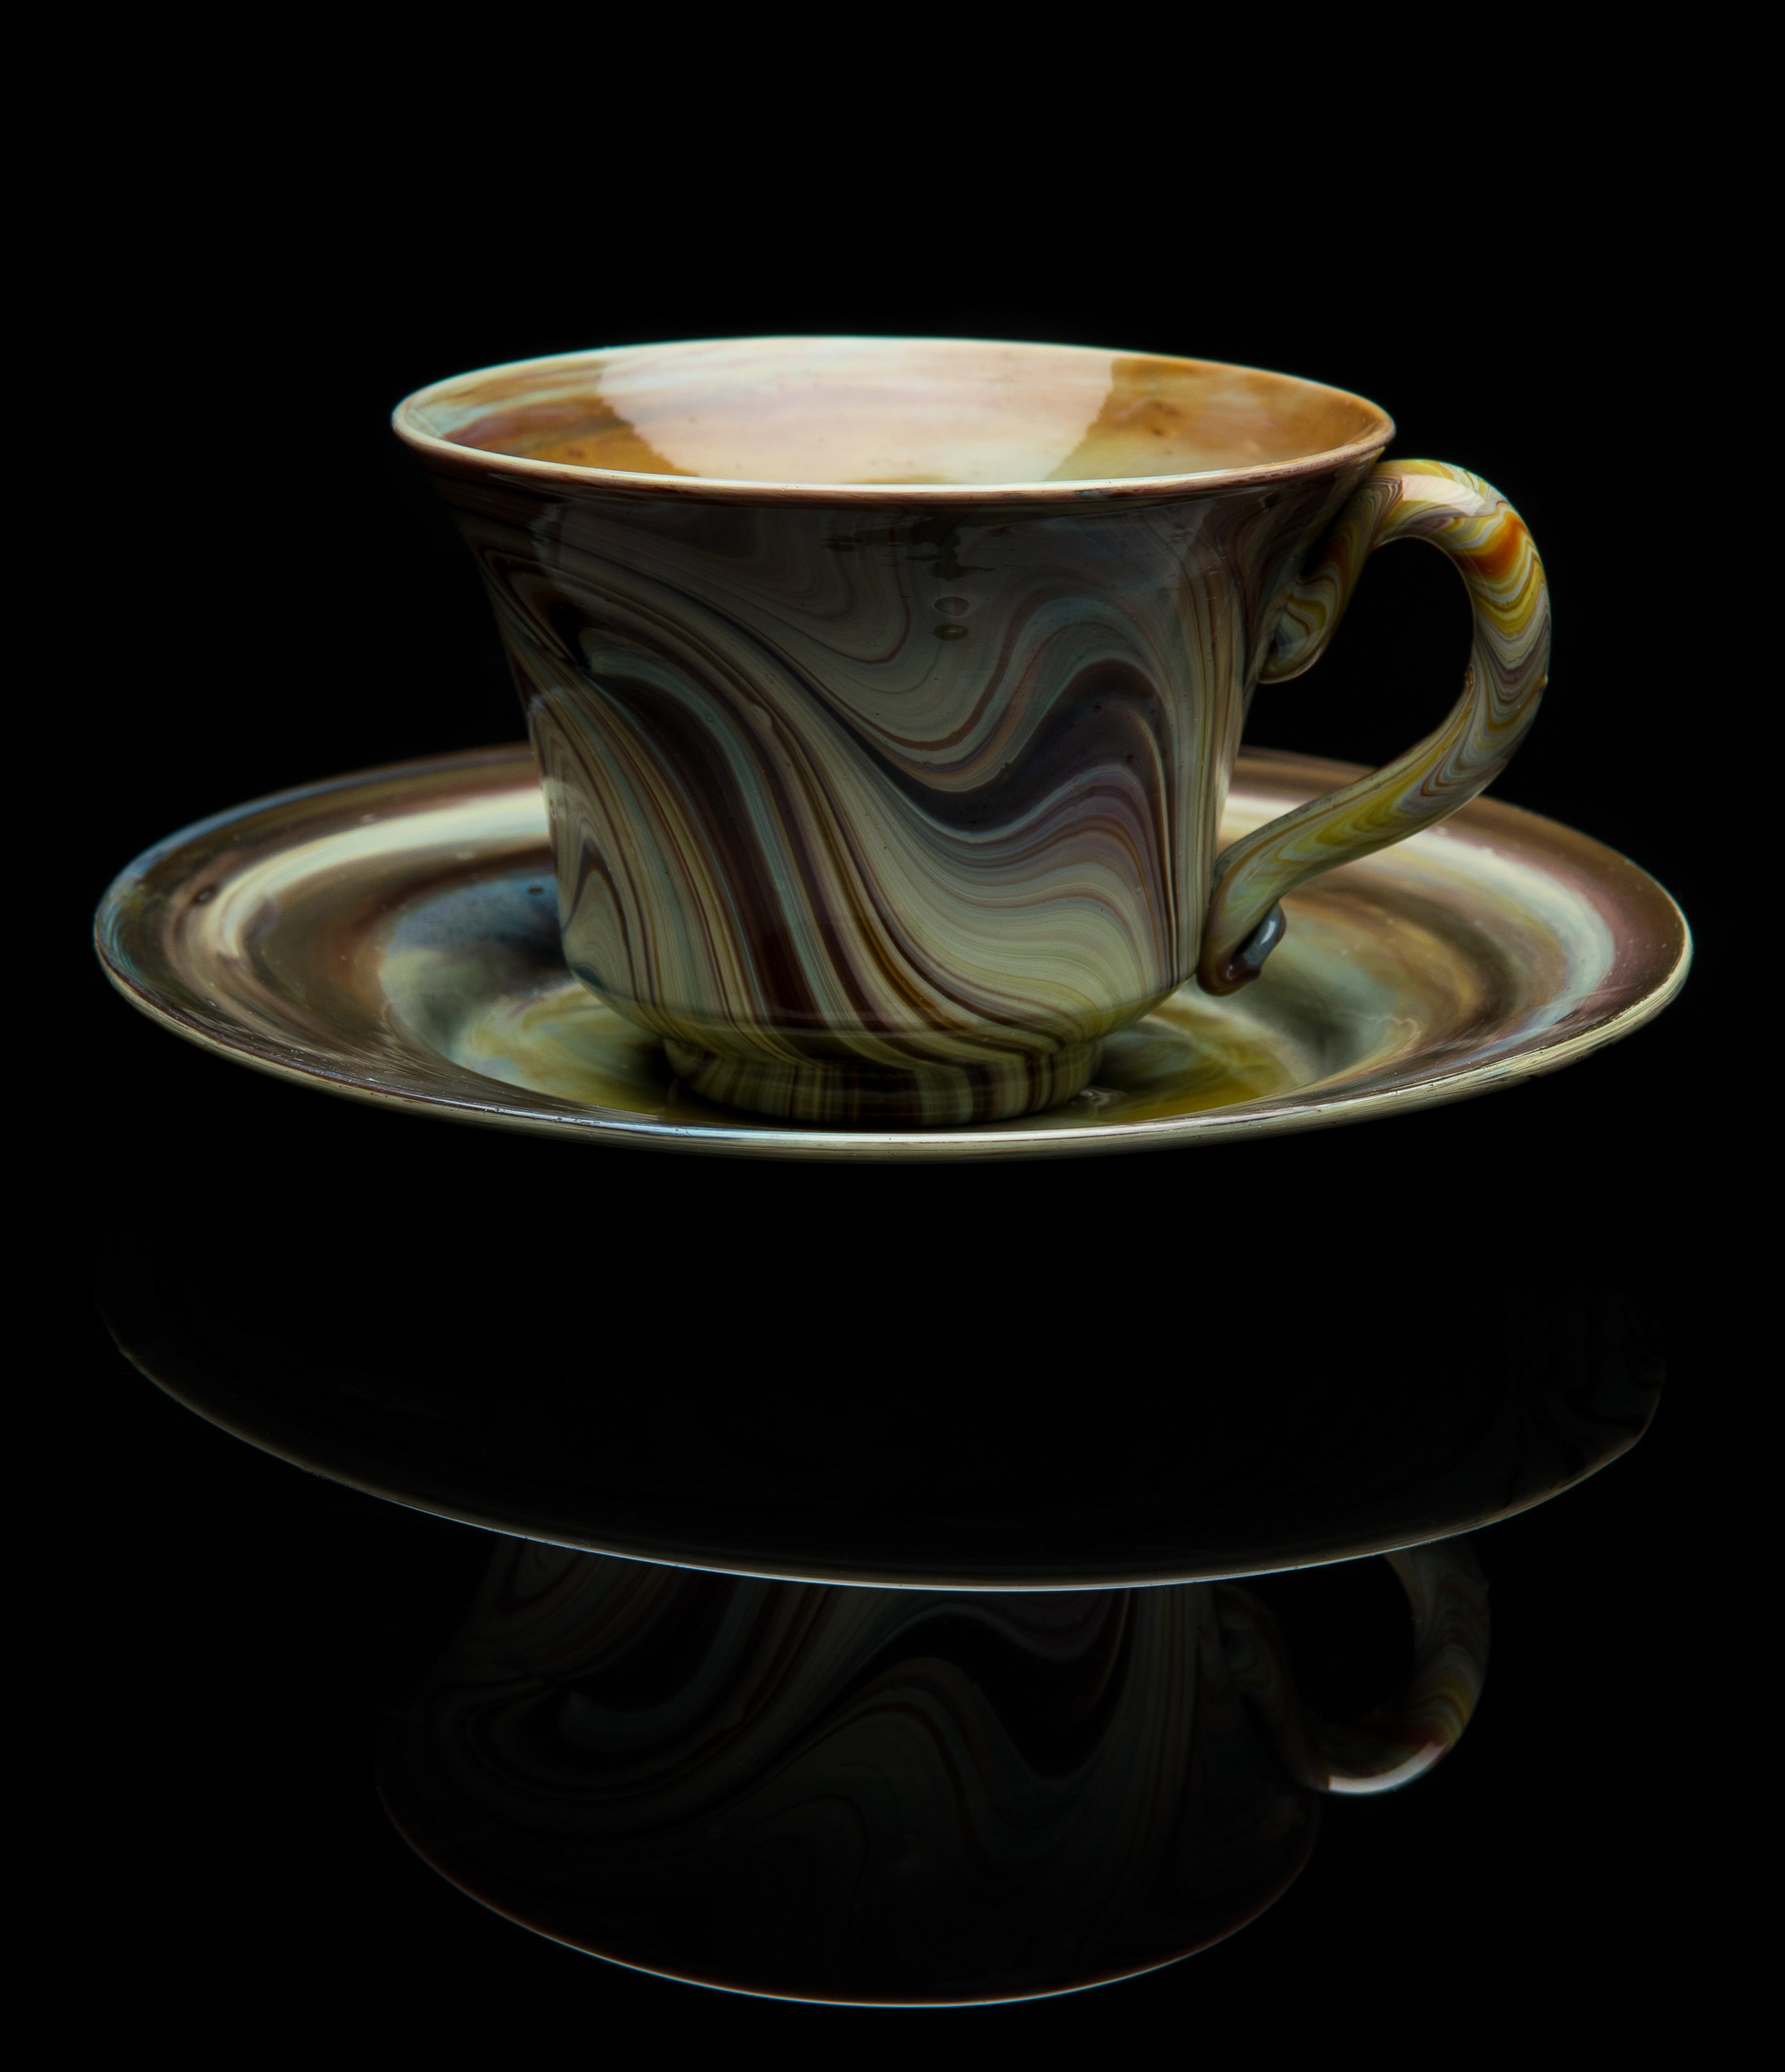 Unknown,  Brown Chalcedony Teacup and Saucer  (circa 1990, glass, 2.5 inches), VV.1021